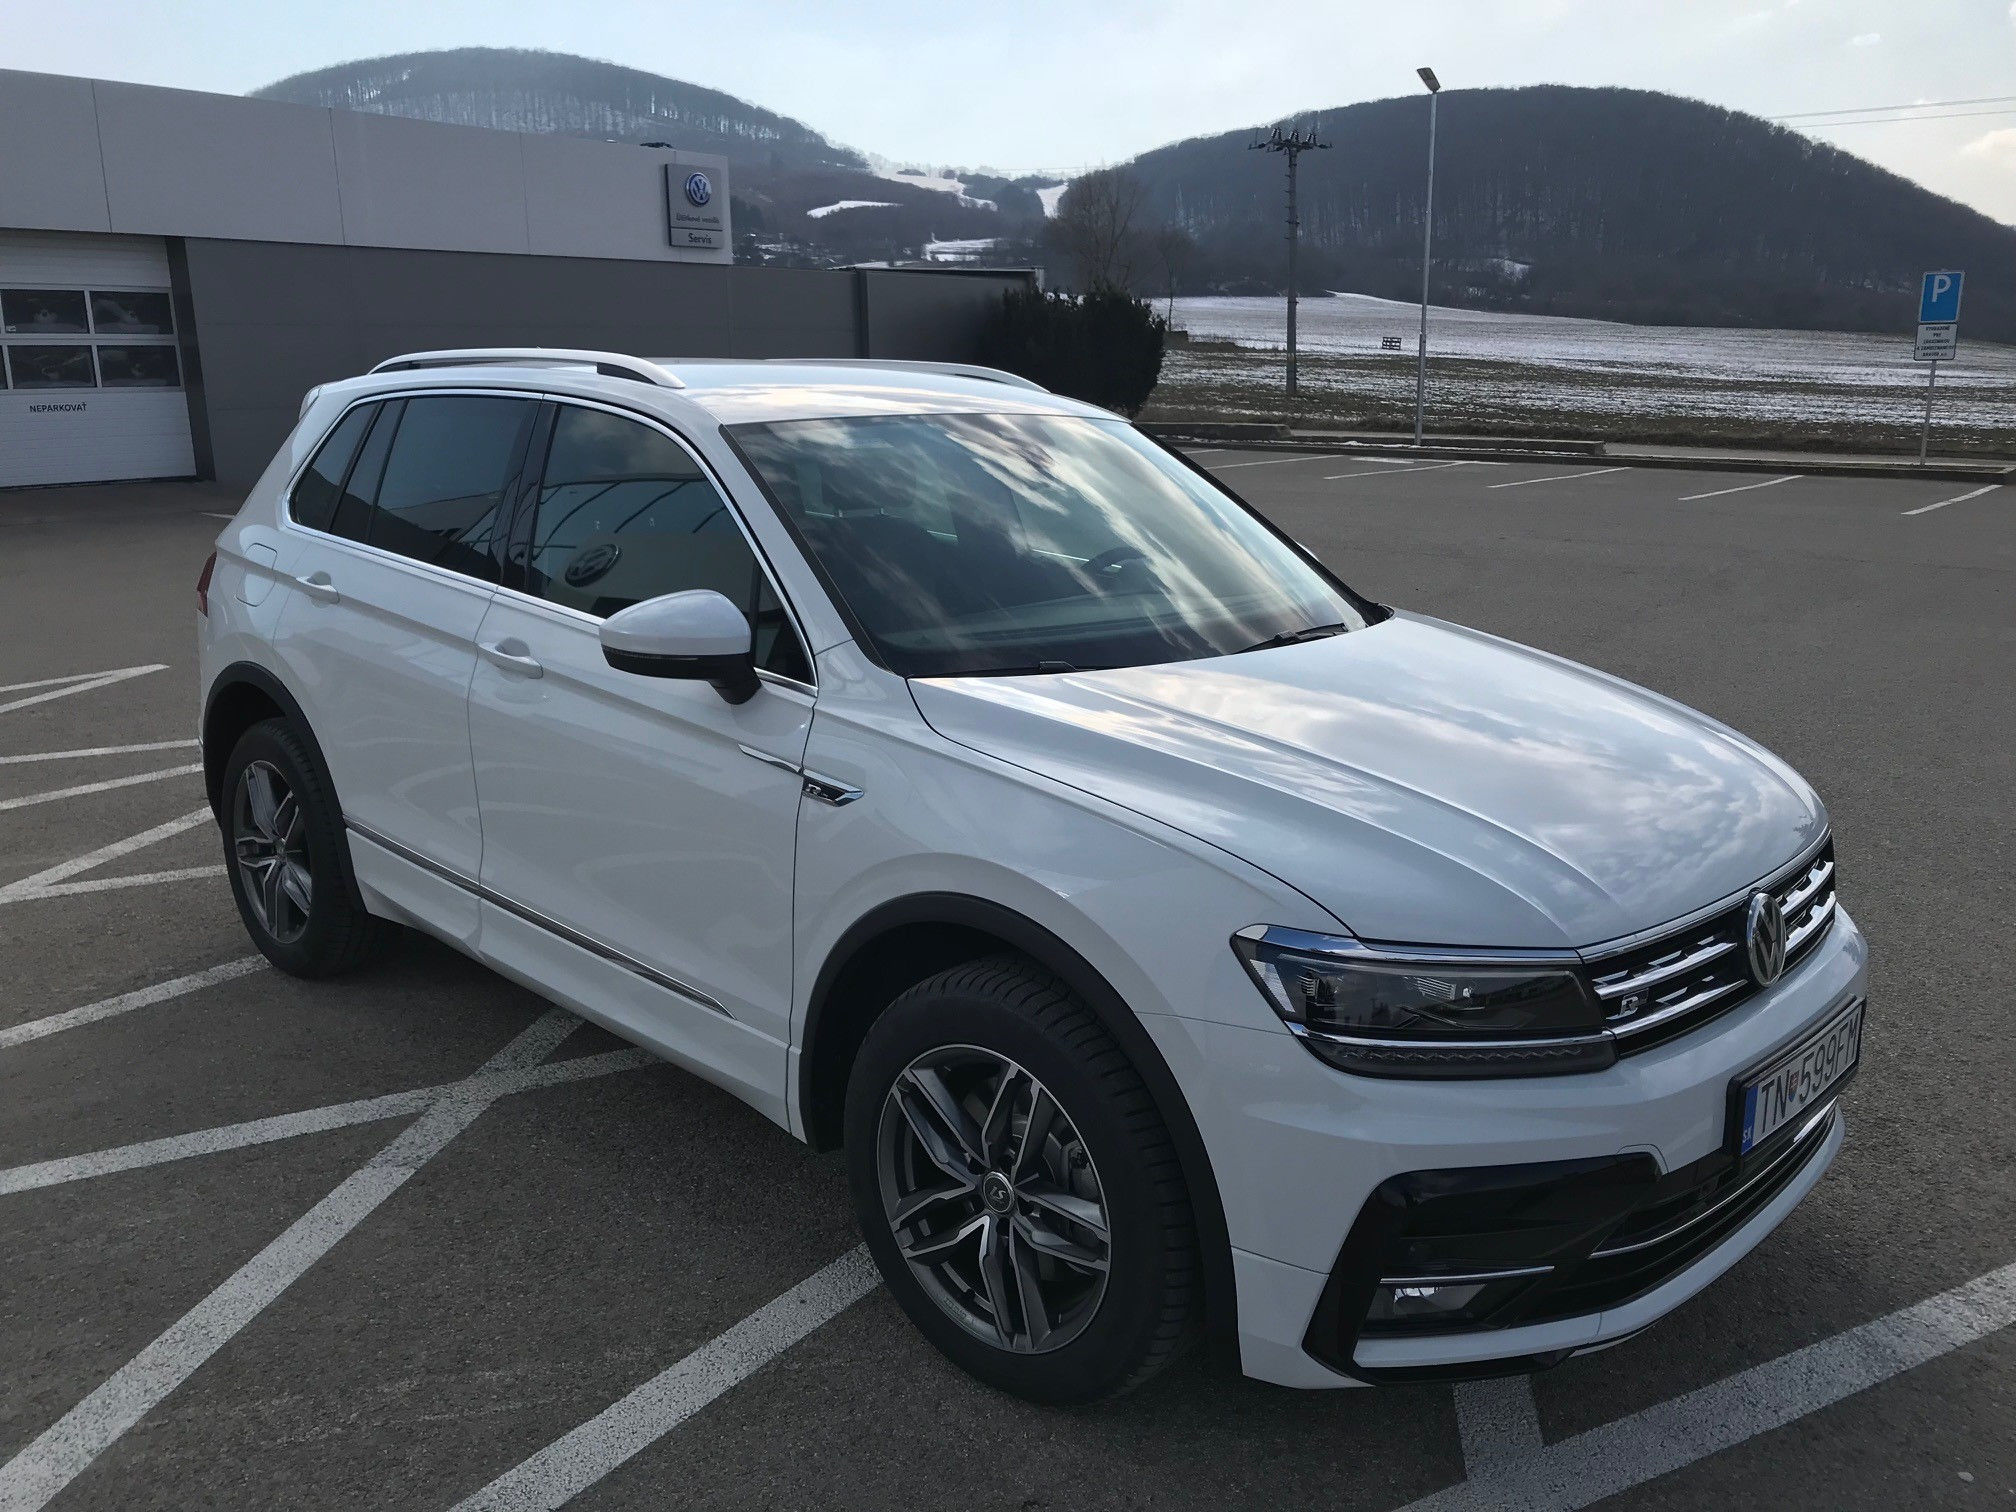 news alufelgen 18zoll alufelgen winterr der vw tiguan ii. Black Bedroom Furniture Sets. Home Design Ideas